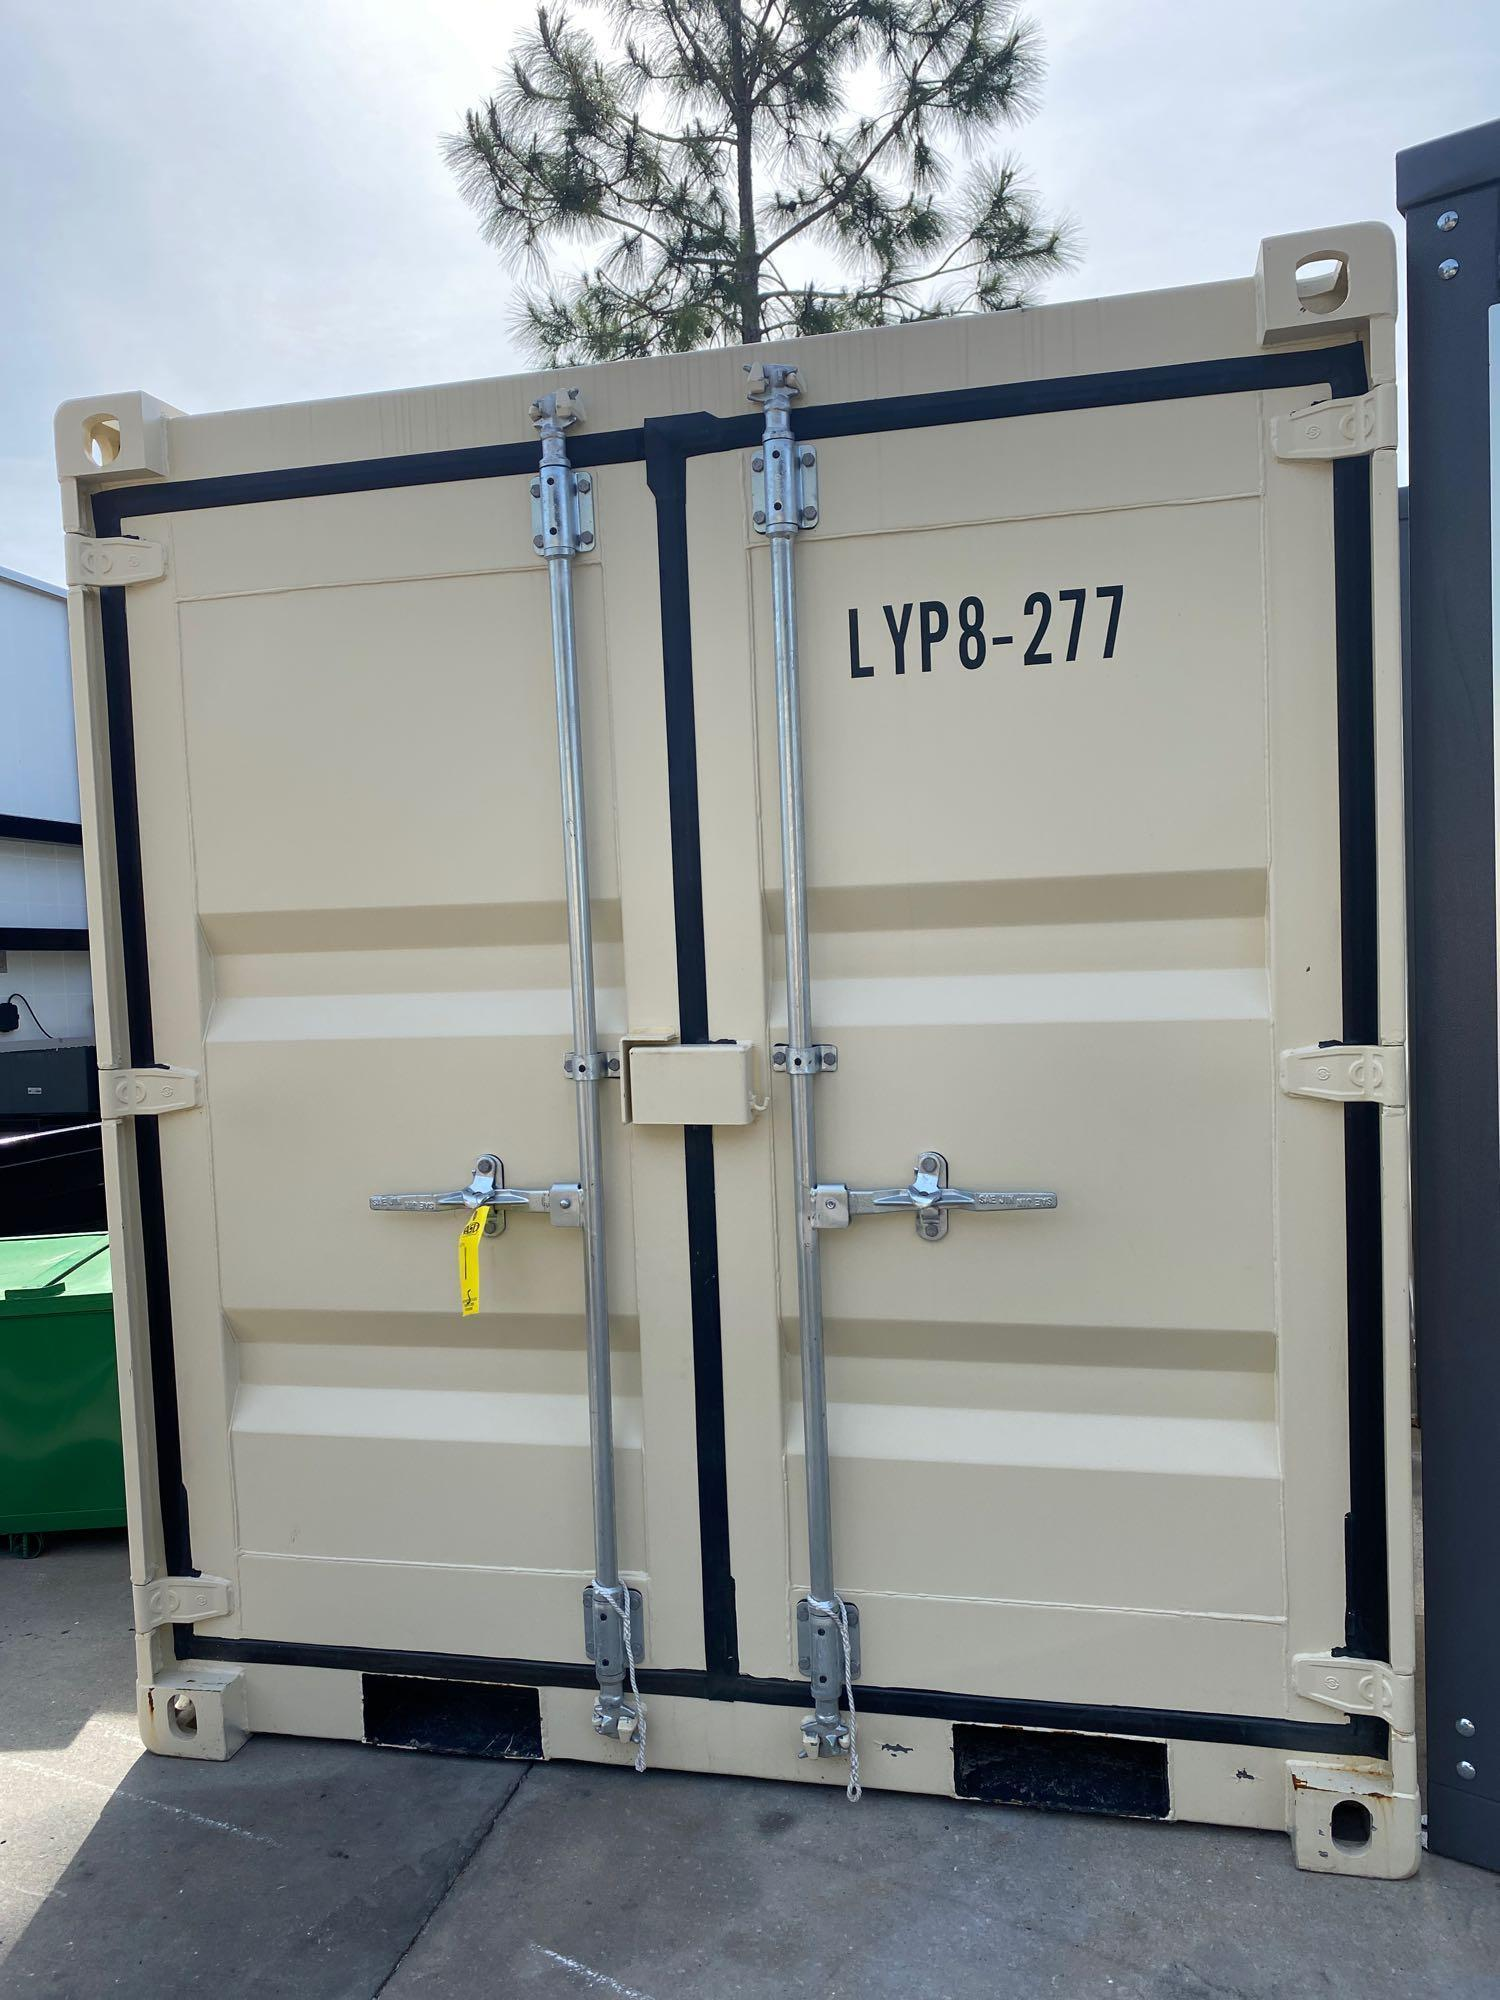 """UNUSED PORTABLE OFFICE/STORAGE CONTAINER WITH WINDOW AND SIDE DOOR, APPROX 77""""w 84""""t 98"""" deep - Image 2 of 6"""